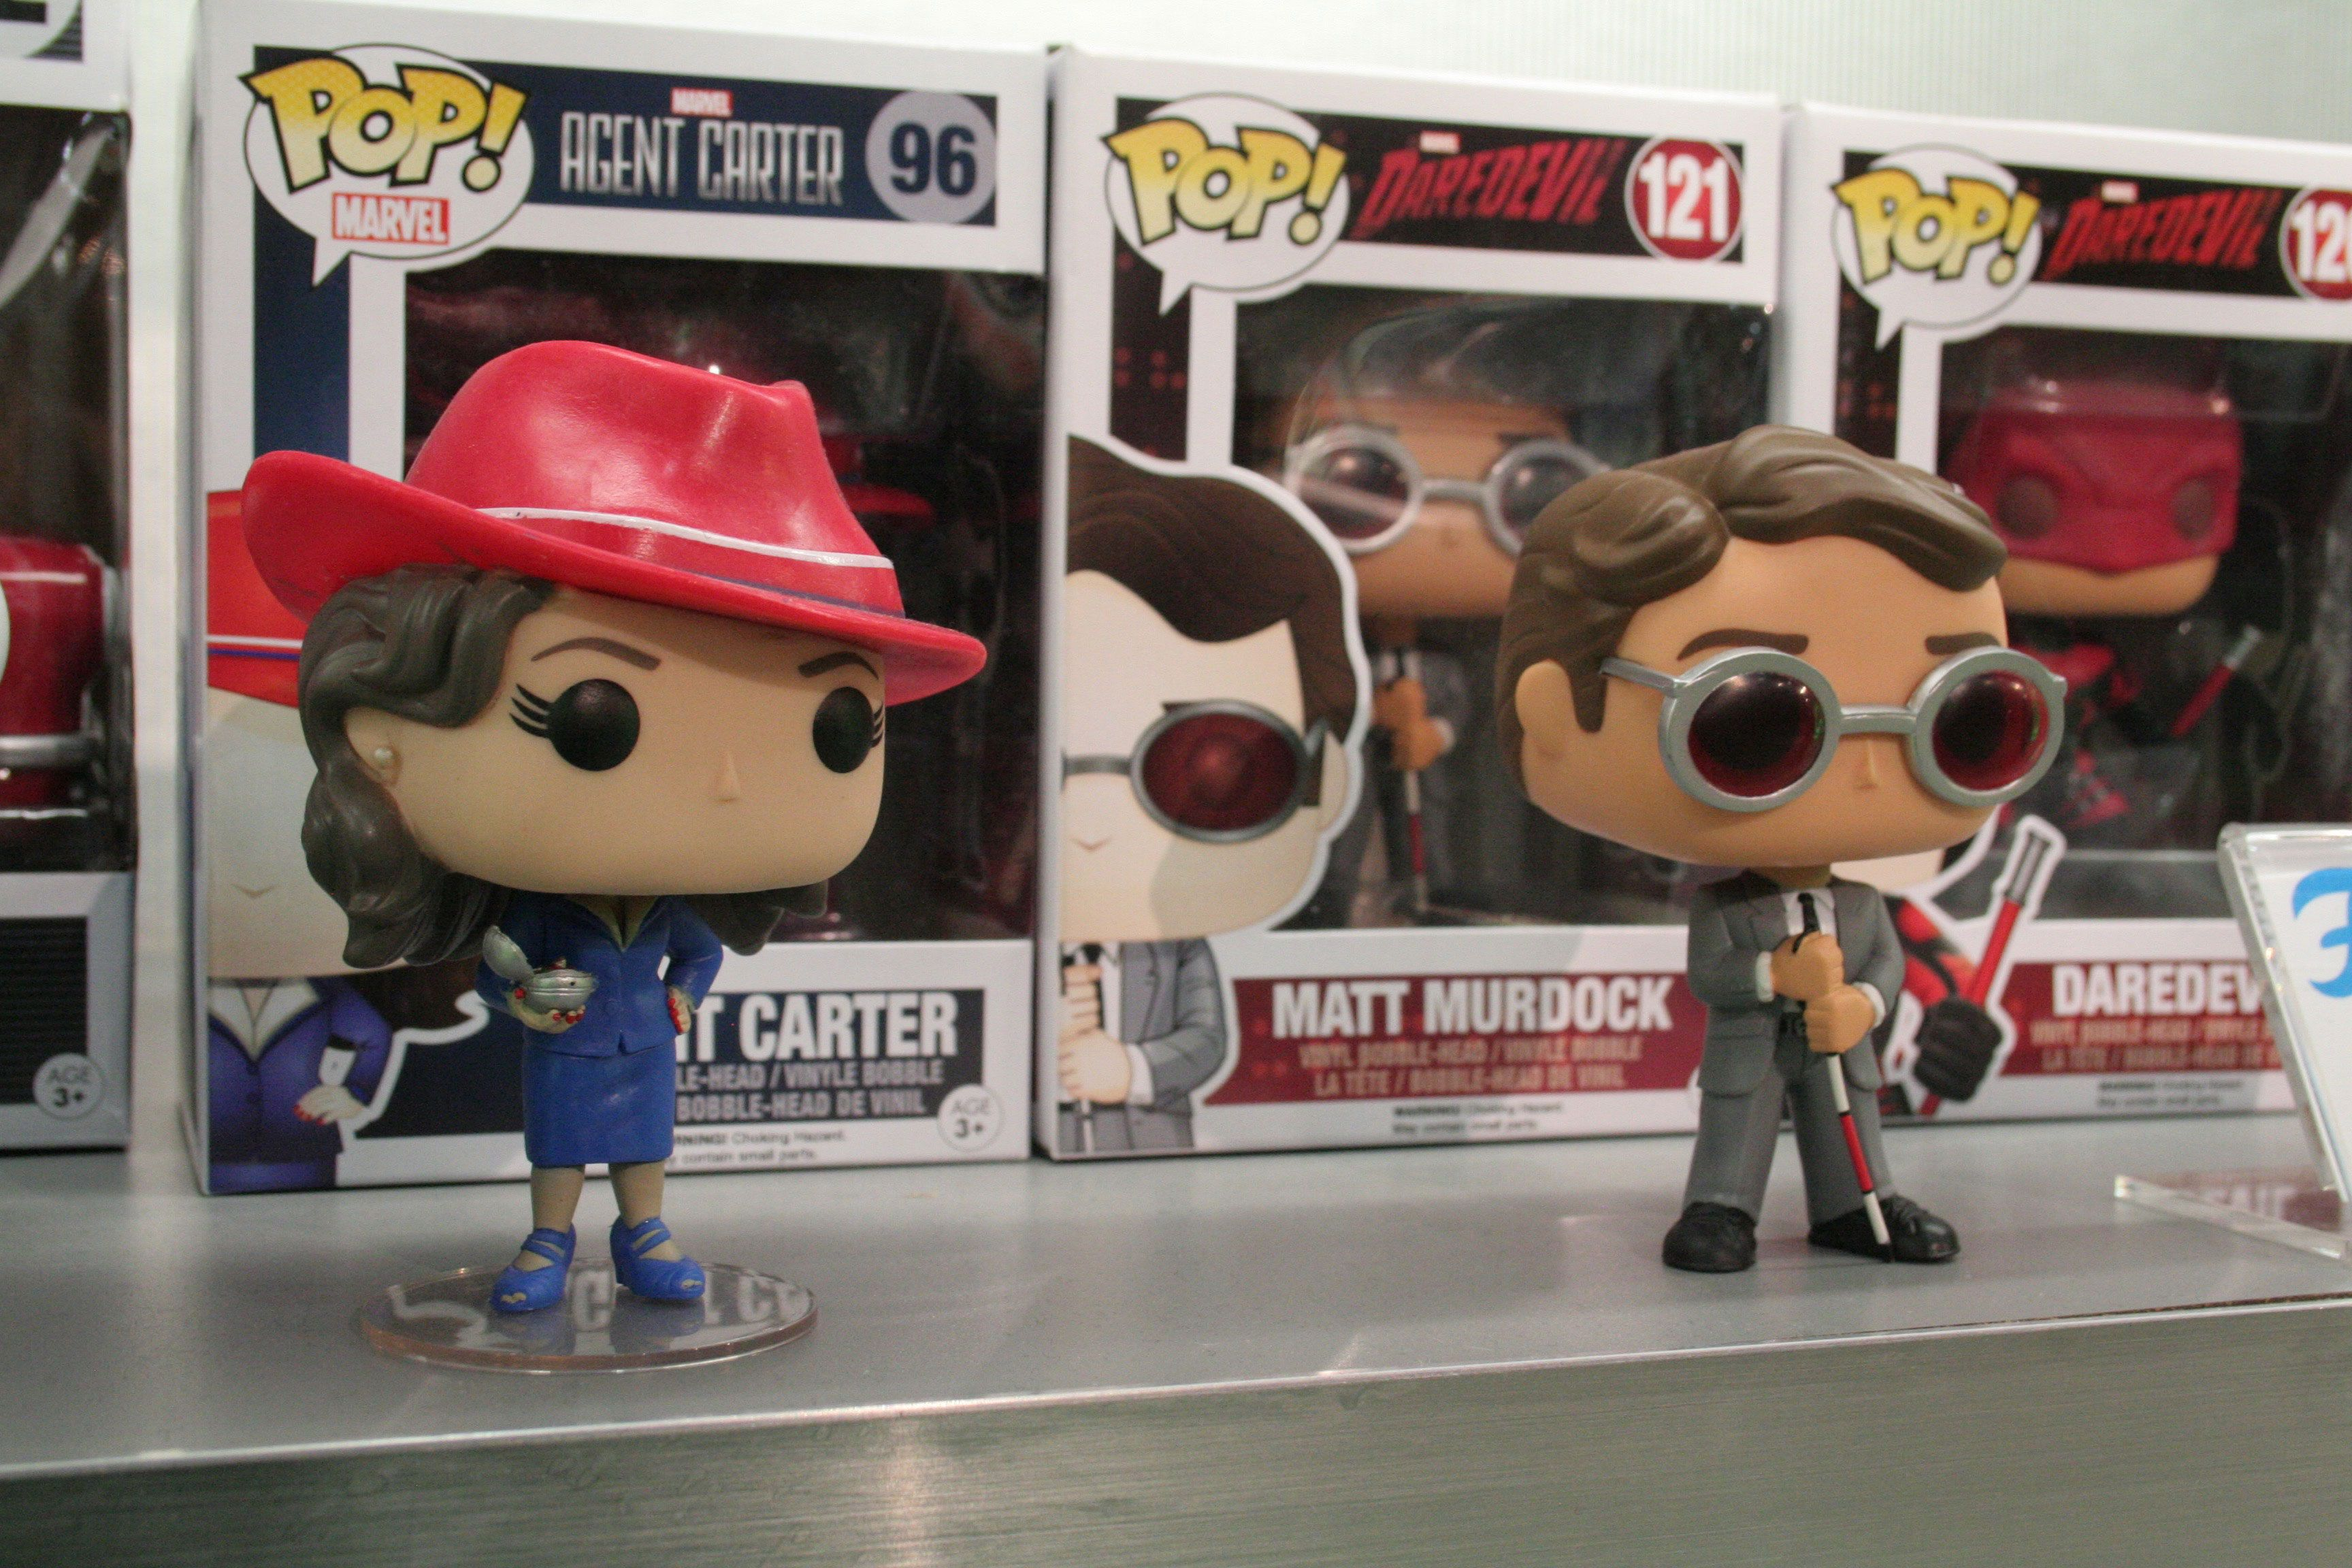 Agent Carter Toys : Star wars batman vs superman funko images from toy fair